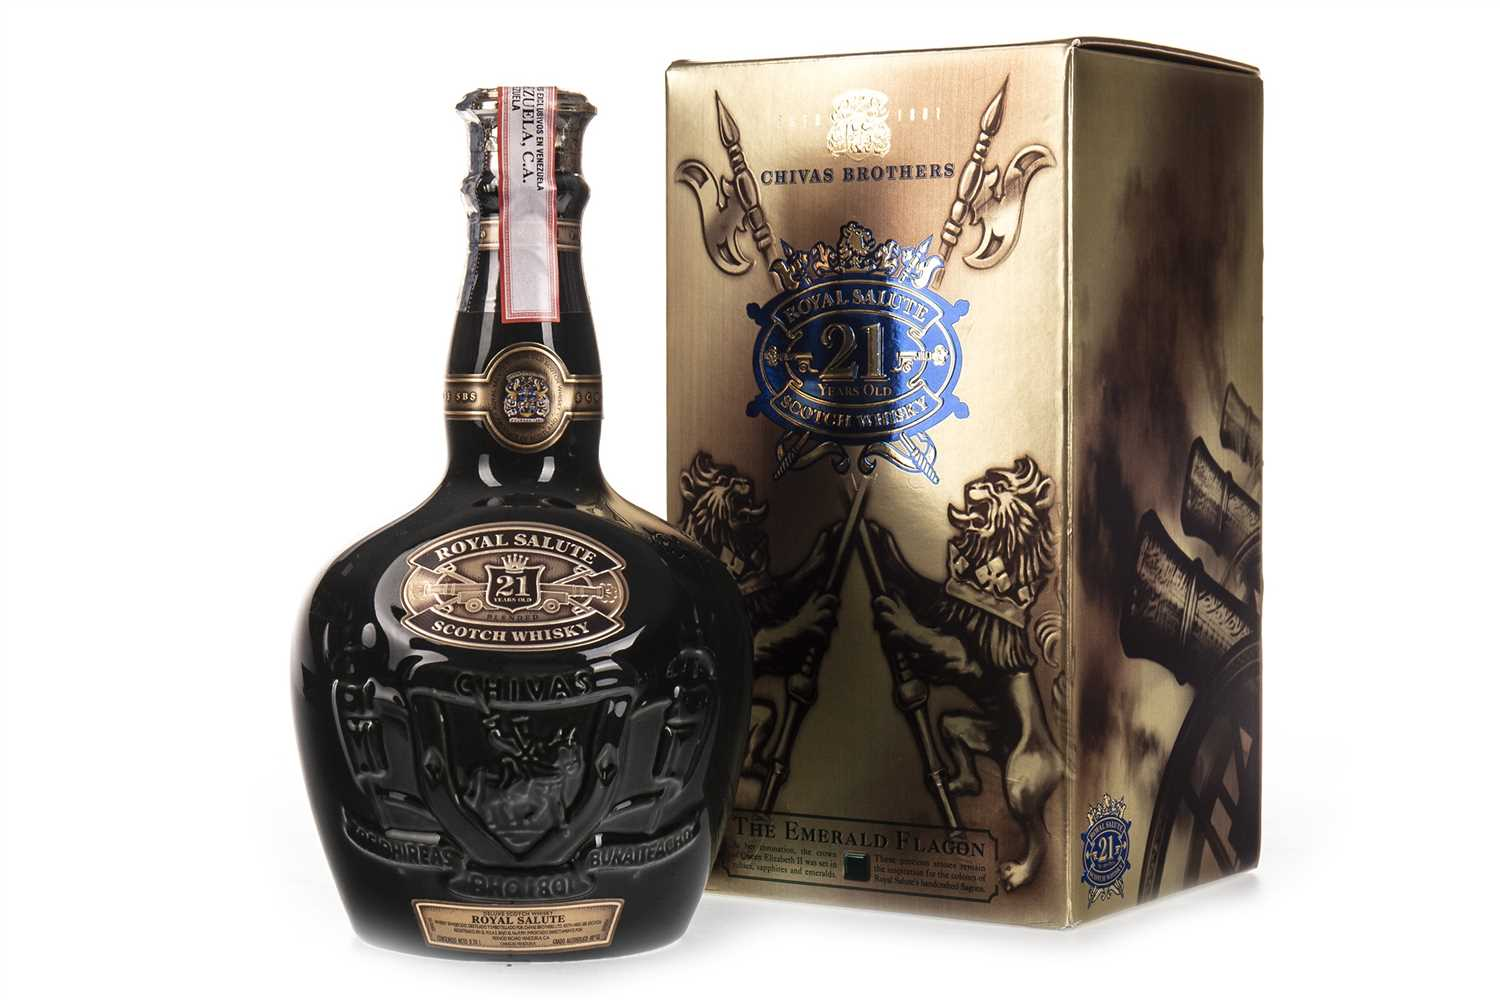 Lot 415-CHIVAS REGAL ROYAL SALUTE 21 YEARS OLD - EMERALD FLAGON